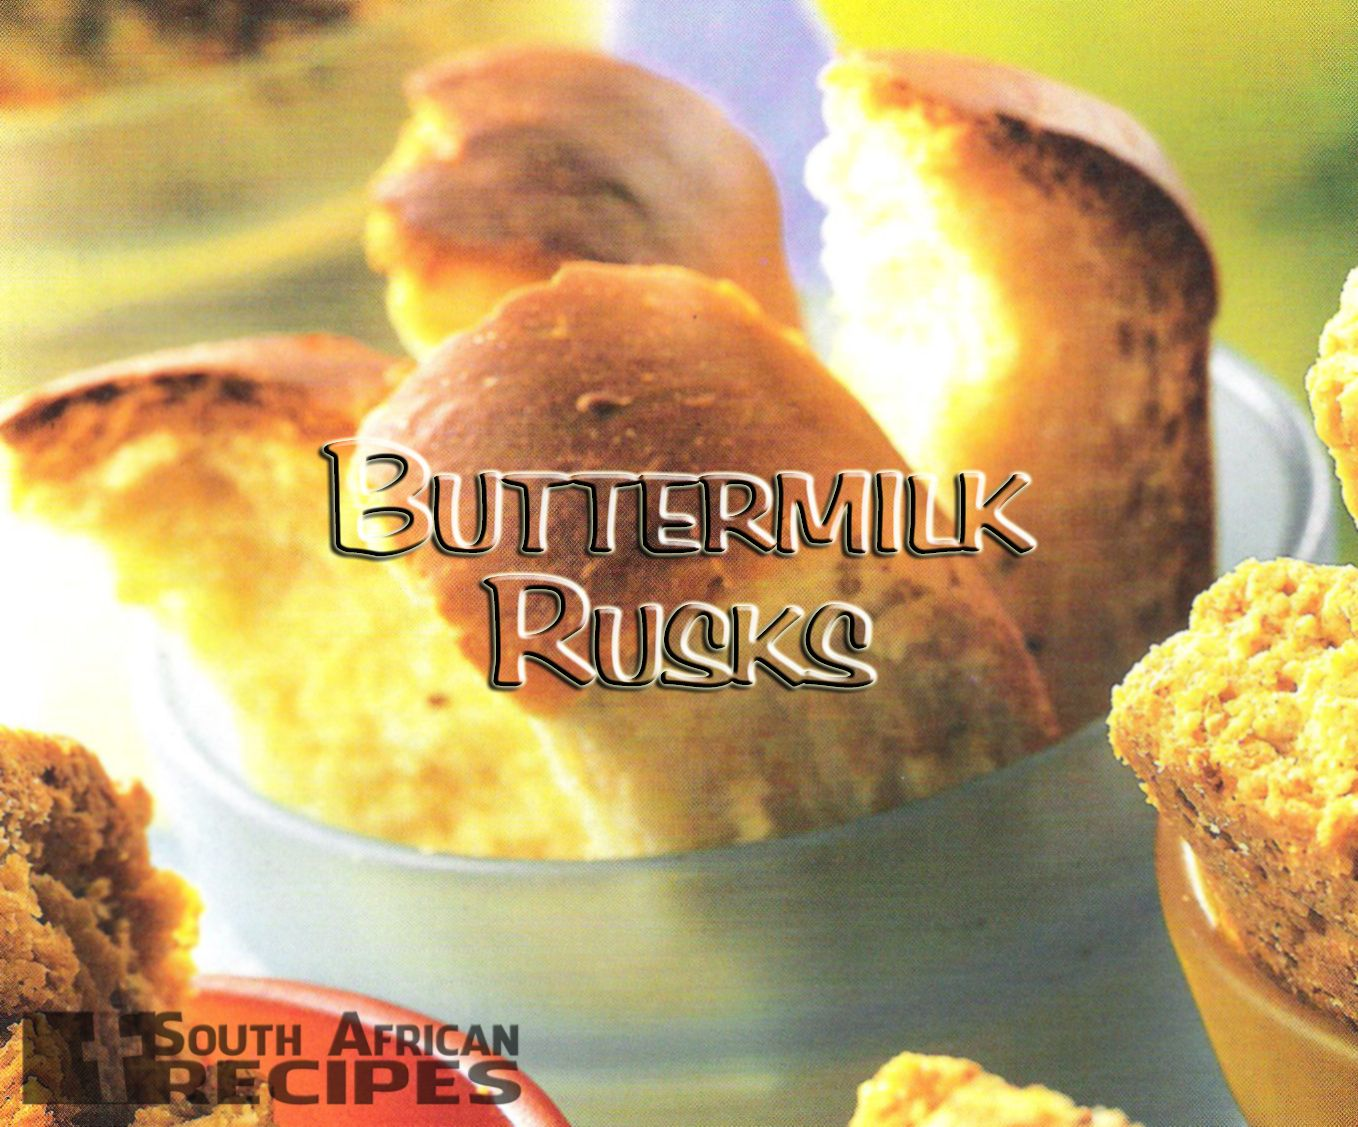 Bethis Recipe Contains No Yeast So You Don T Have To Knead Or Let The Dough Rise So It Is Done In A Jiffy This Rec South African Recipes African Food Recipes